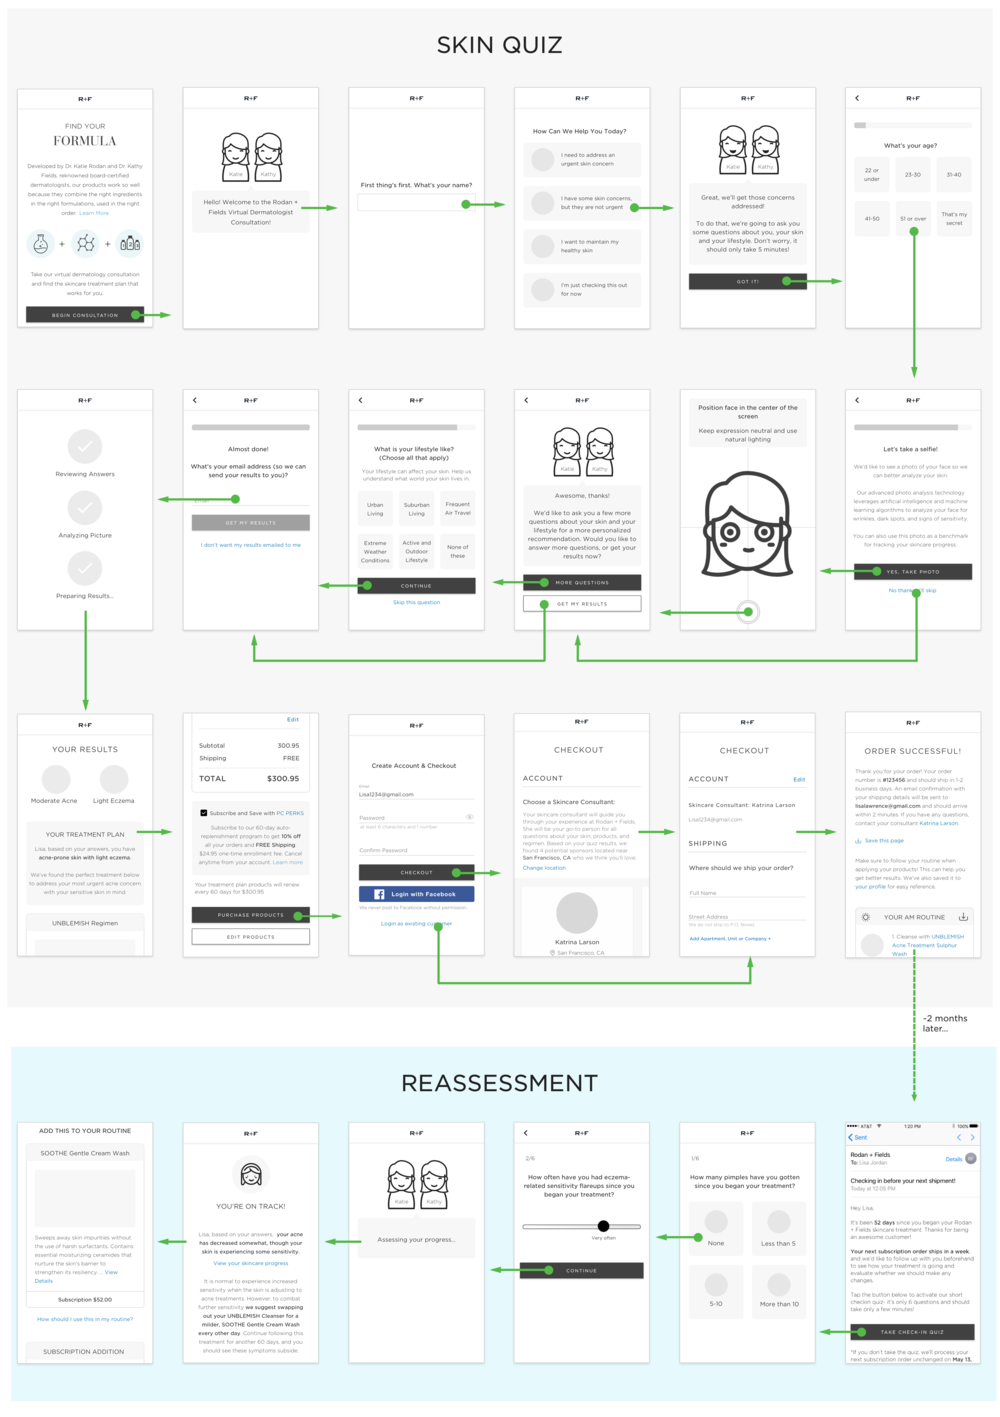 A Wireframe flow of key screens in the skin quiz and reassessment